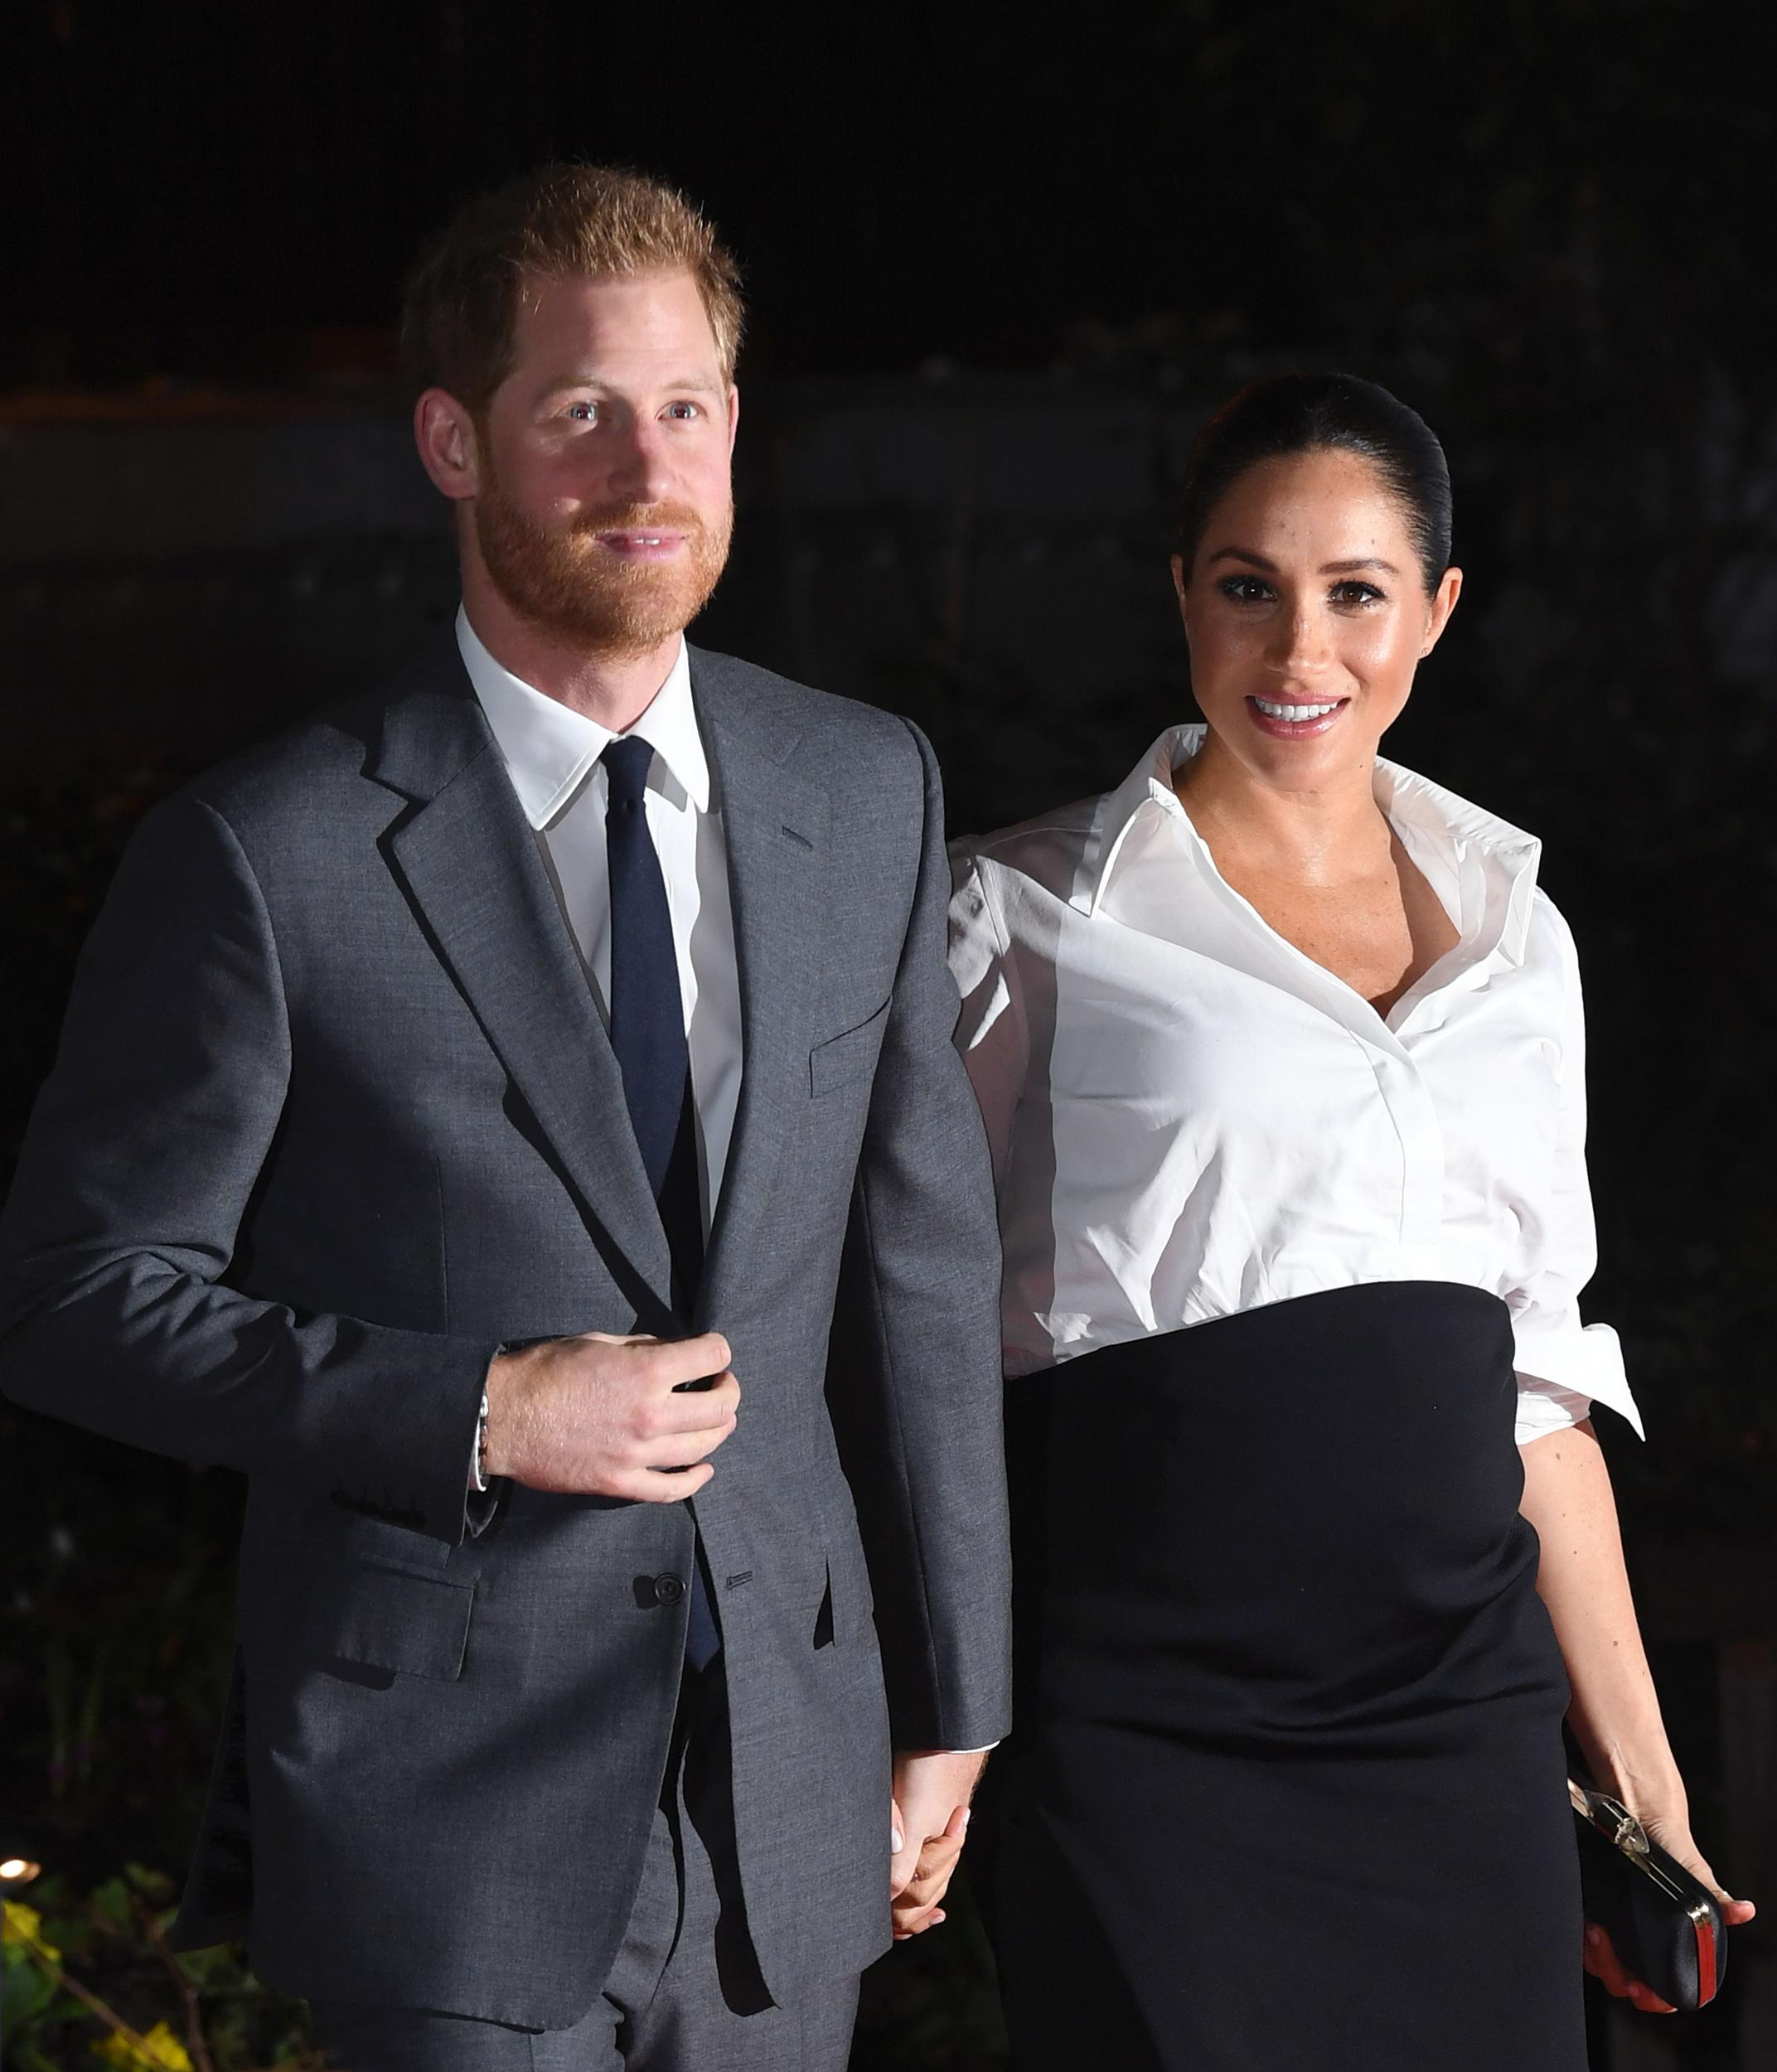 The Duke and Duchess of Sussex arriving at the Endeavour Fund Awards at Draper�s Hall, London. The awards celebrate the achievements of wounded, injured and sick servicemen and women who have taken part in sporting and adventure challenges over the last year.Picture Credit should read: Doug Peters/EMPICS